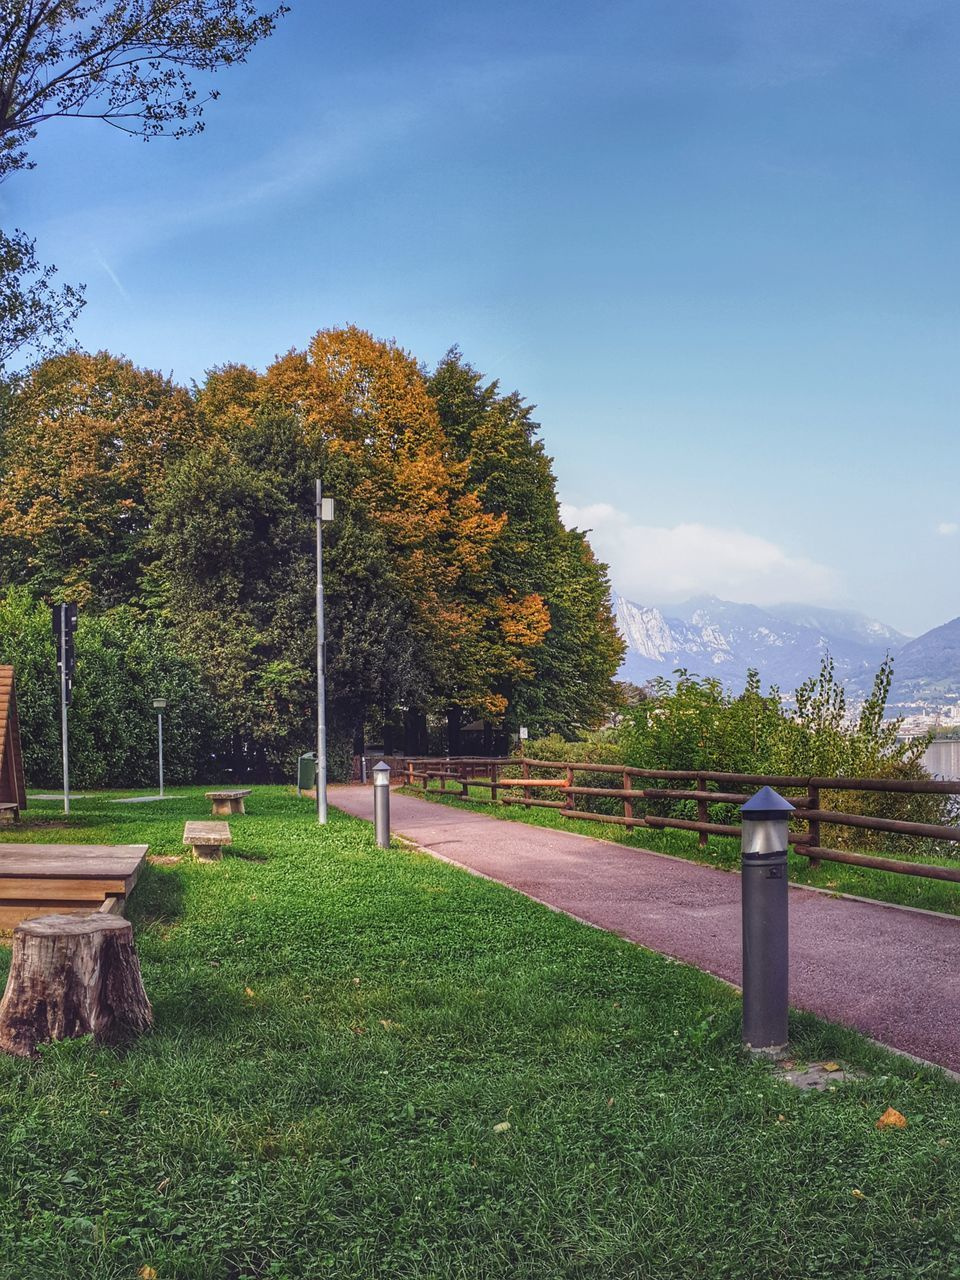 plant, tree, grass, nature, sky, green color, day, beauty in nature, field, no people, autumn, growth, tranquility, land, tranquil scene, change, footpath, scenics - nature, park, outdoors